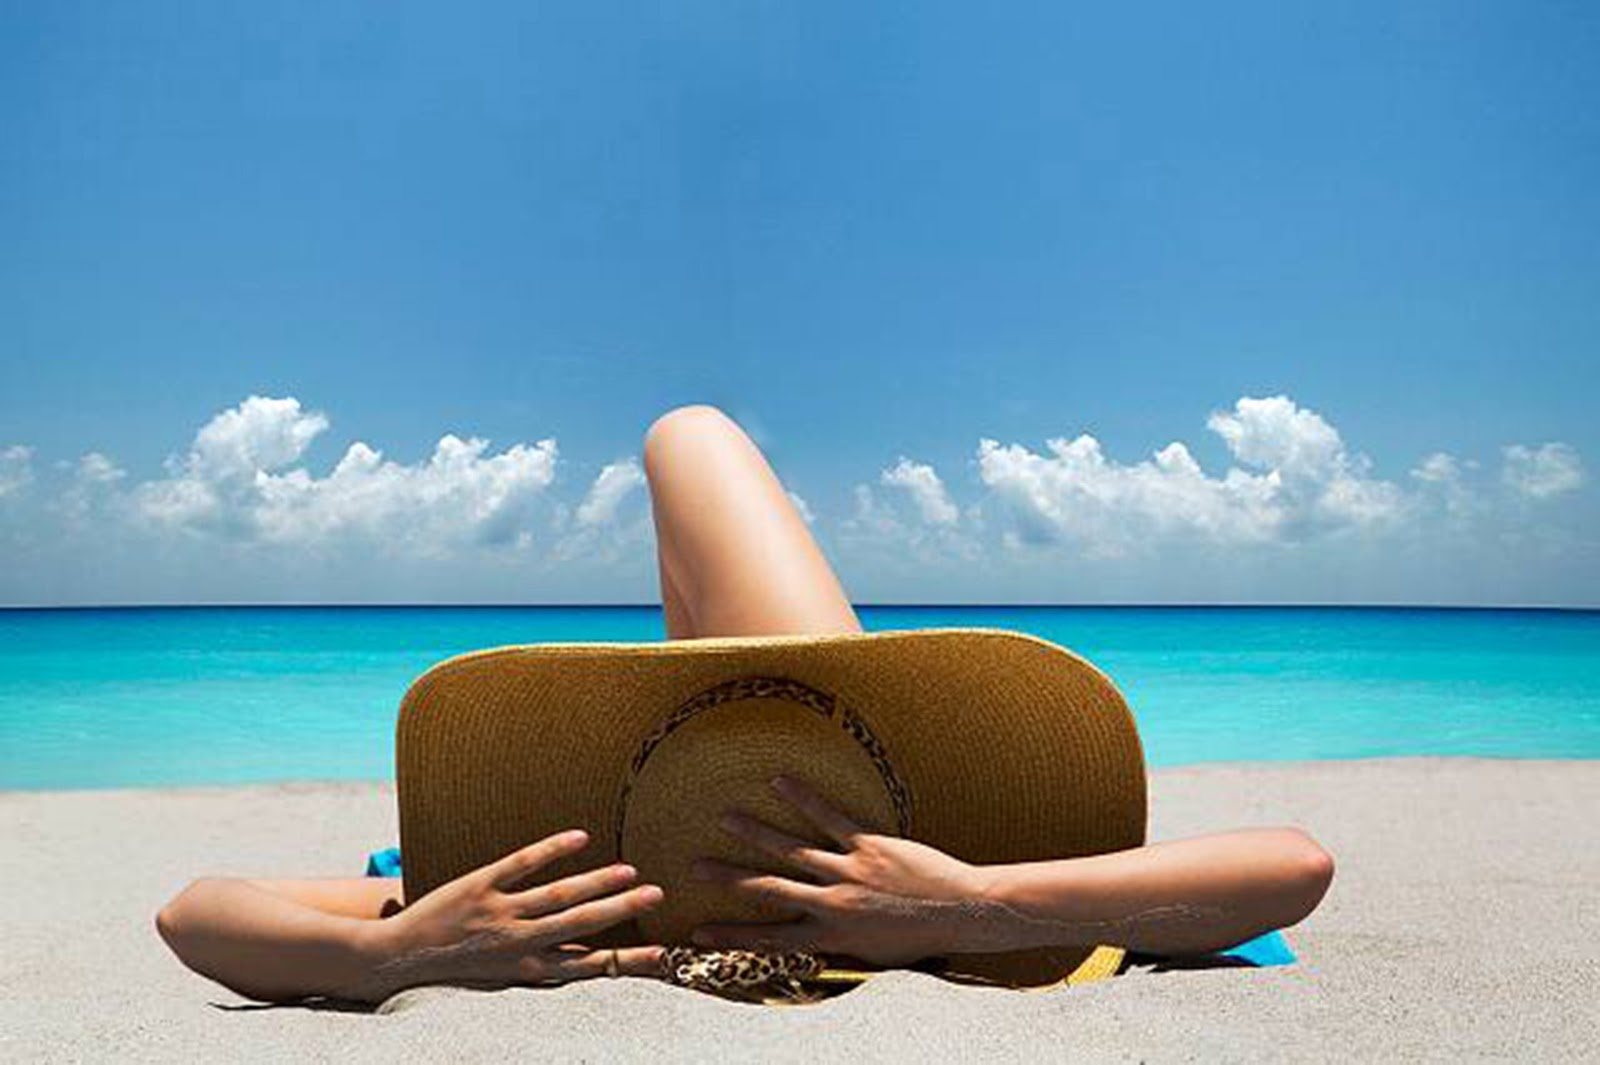 Top 3 steps to avoid tanning while beaching!